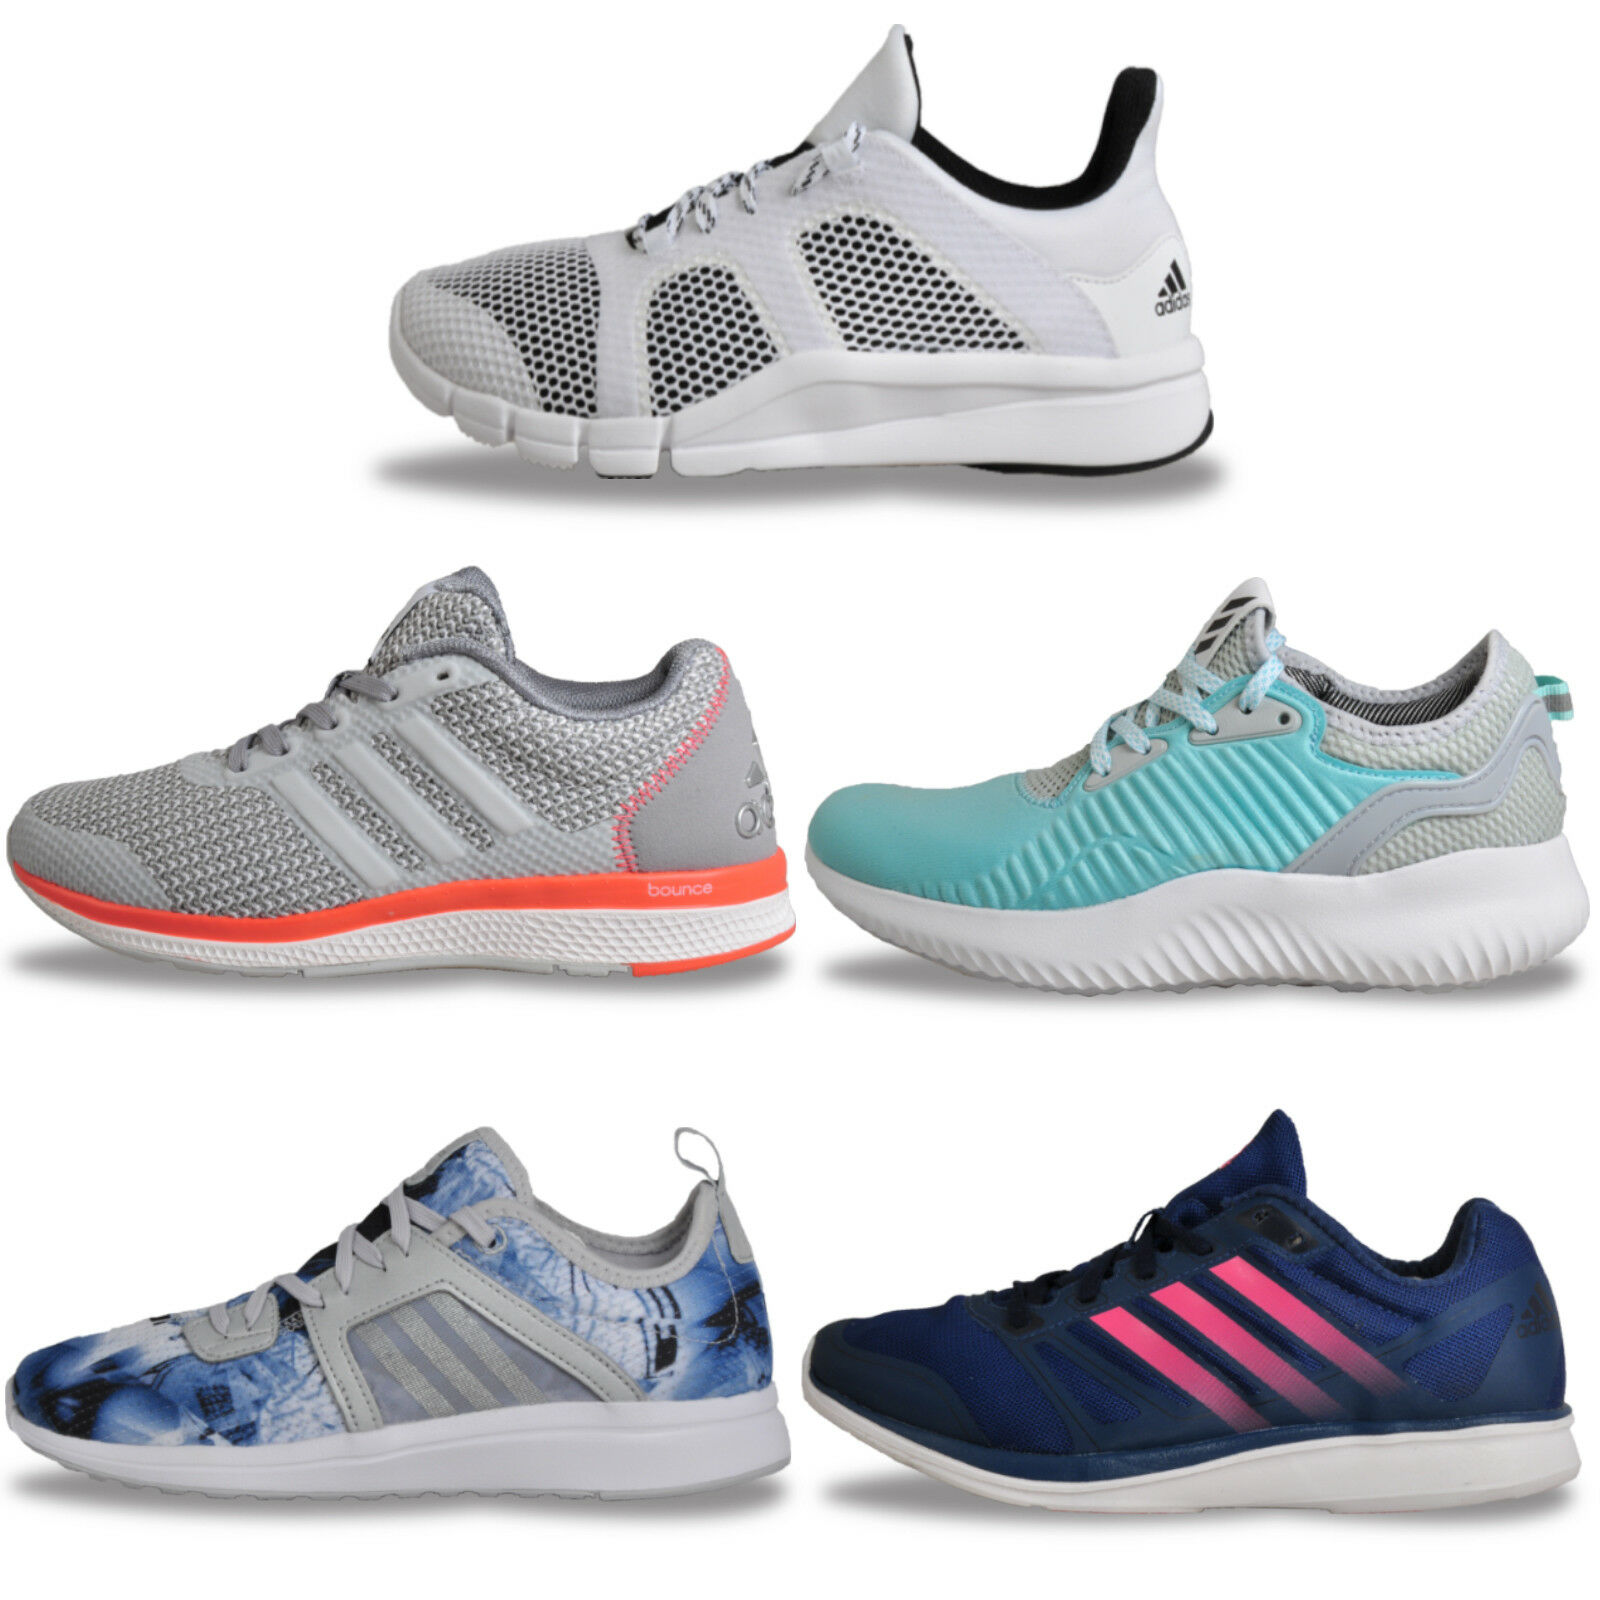 Womens Adidas Premium Running shoes Gym Fitness Trainers From